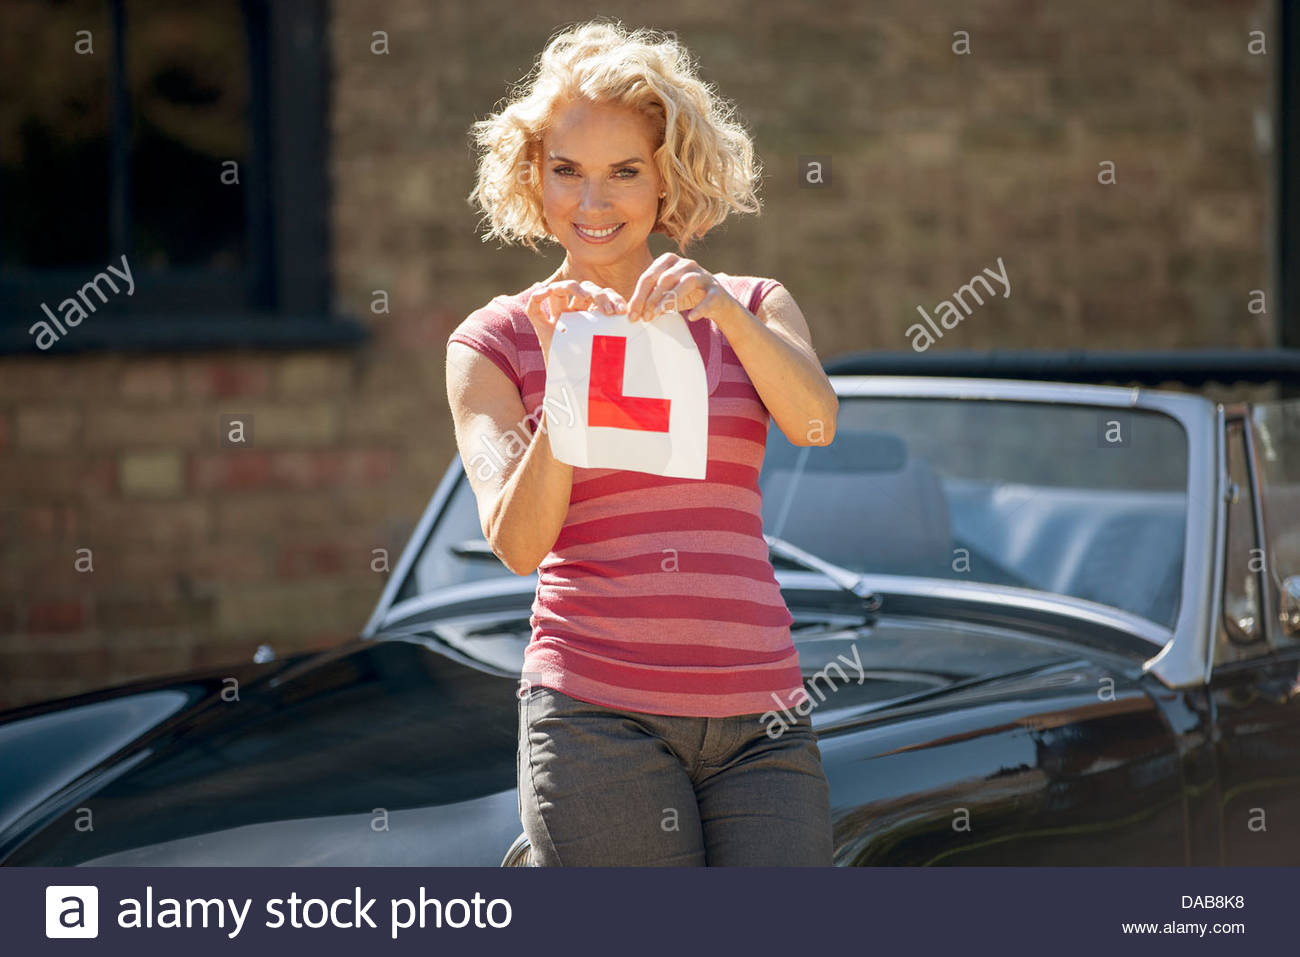 A mature woman tearing up a learner driver plate - Stock Image